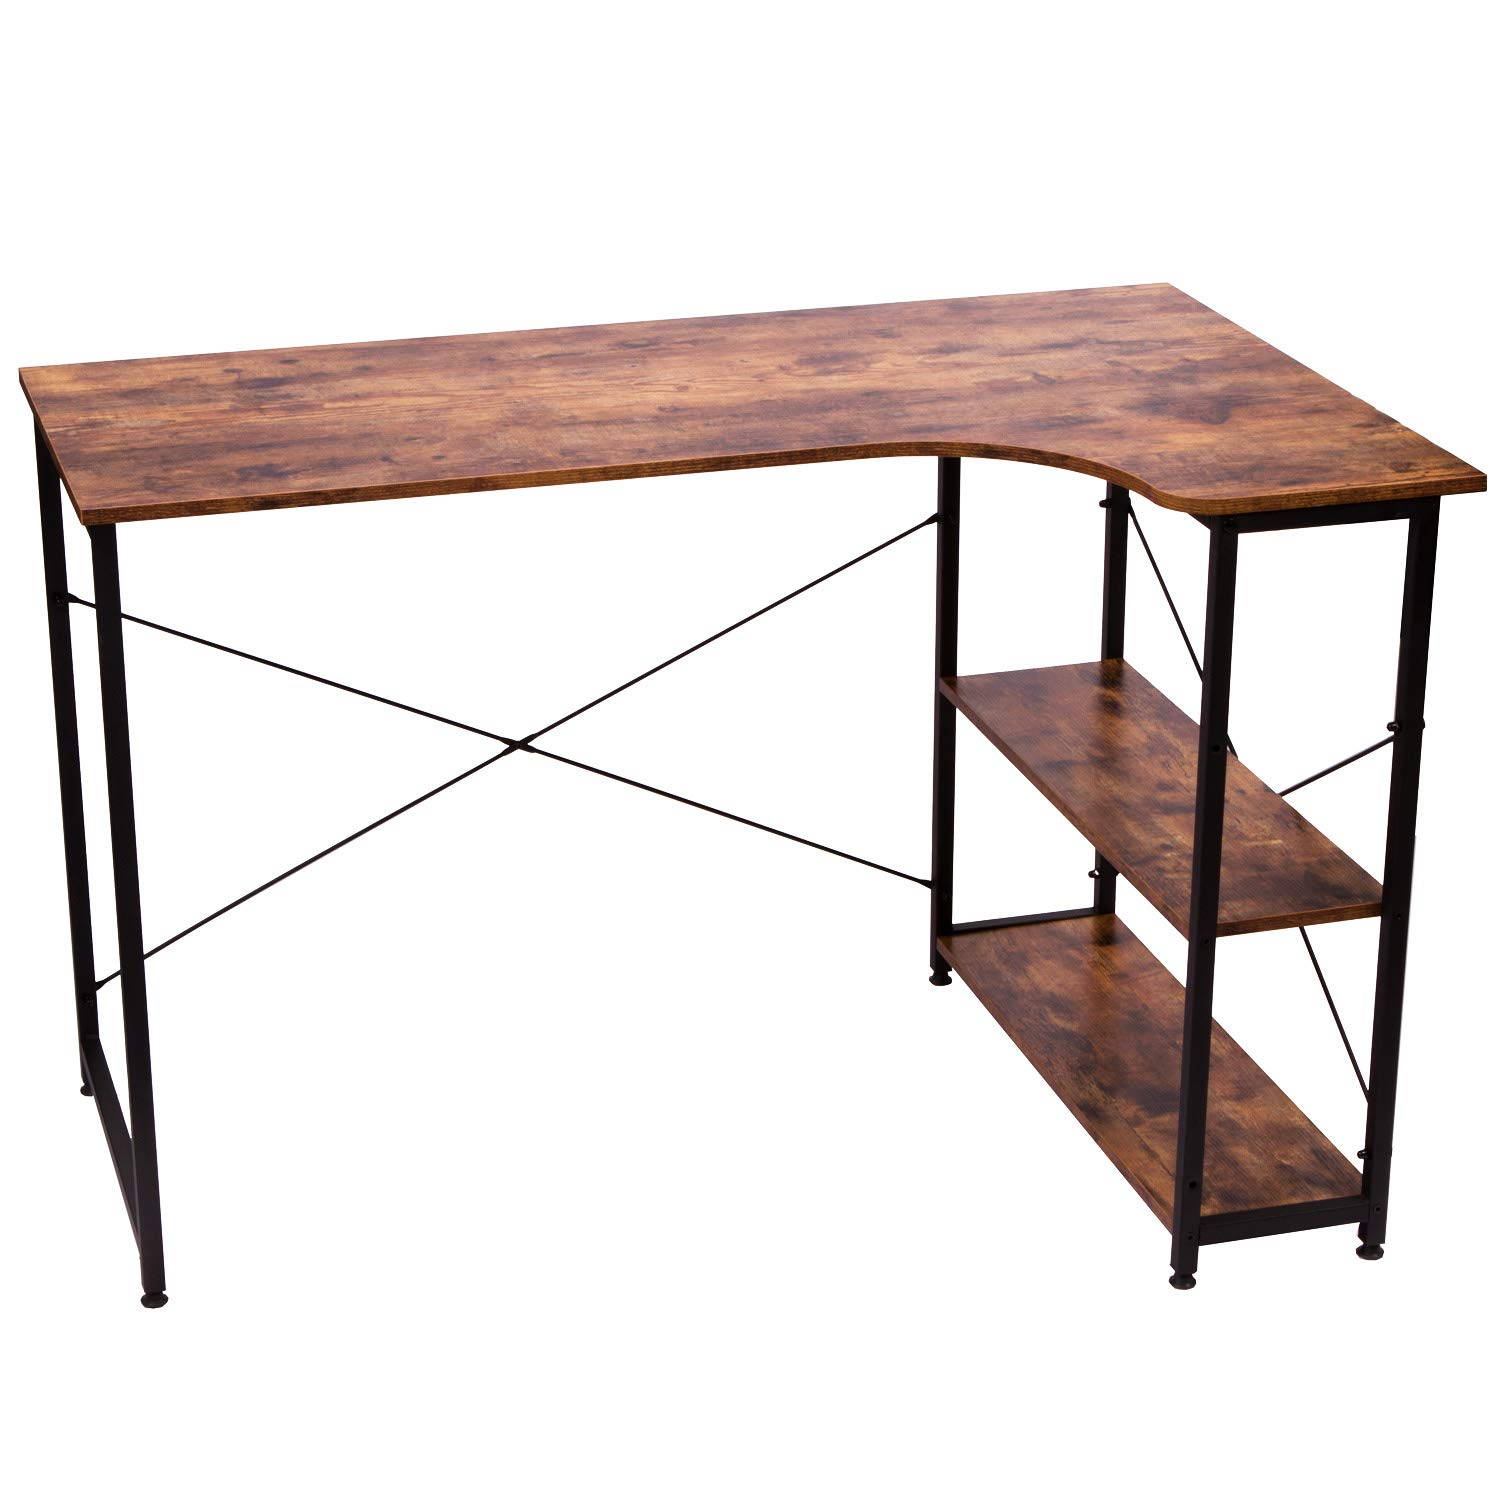 IRONCK L Shaped Desk Computer Table 47'', Small Corner Desk with Shelf for Home Office, Writing Workstation, Space-Saving, Easy to Assemble, Retro Brown